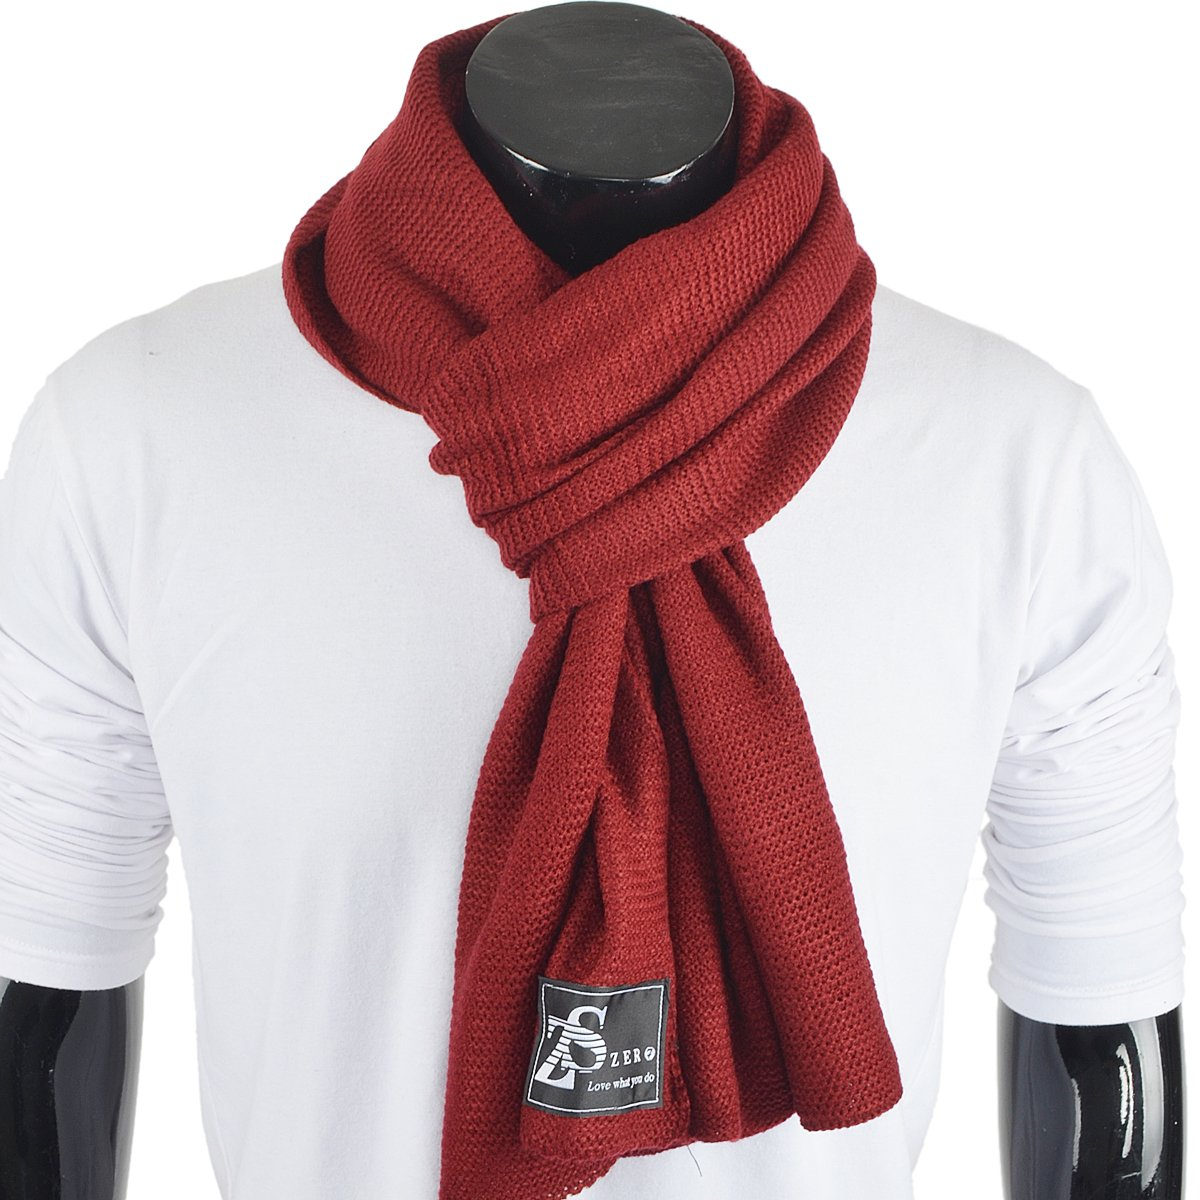 Stylish Unisex Daily Square Pattern Soft Knitted Winter Scarf E5031 (E5081-Claret)